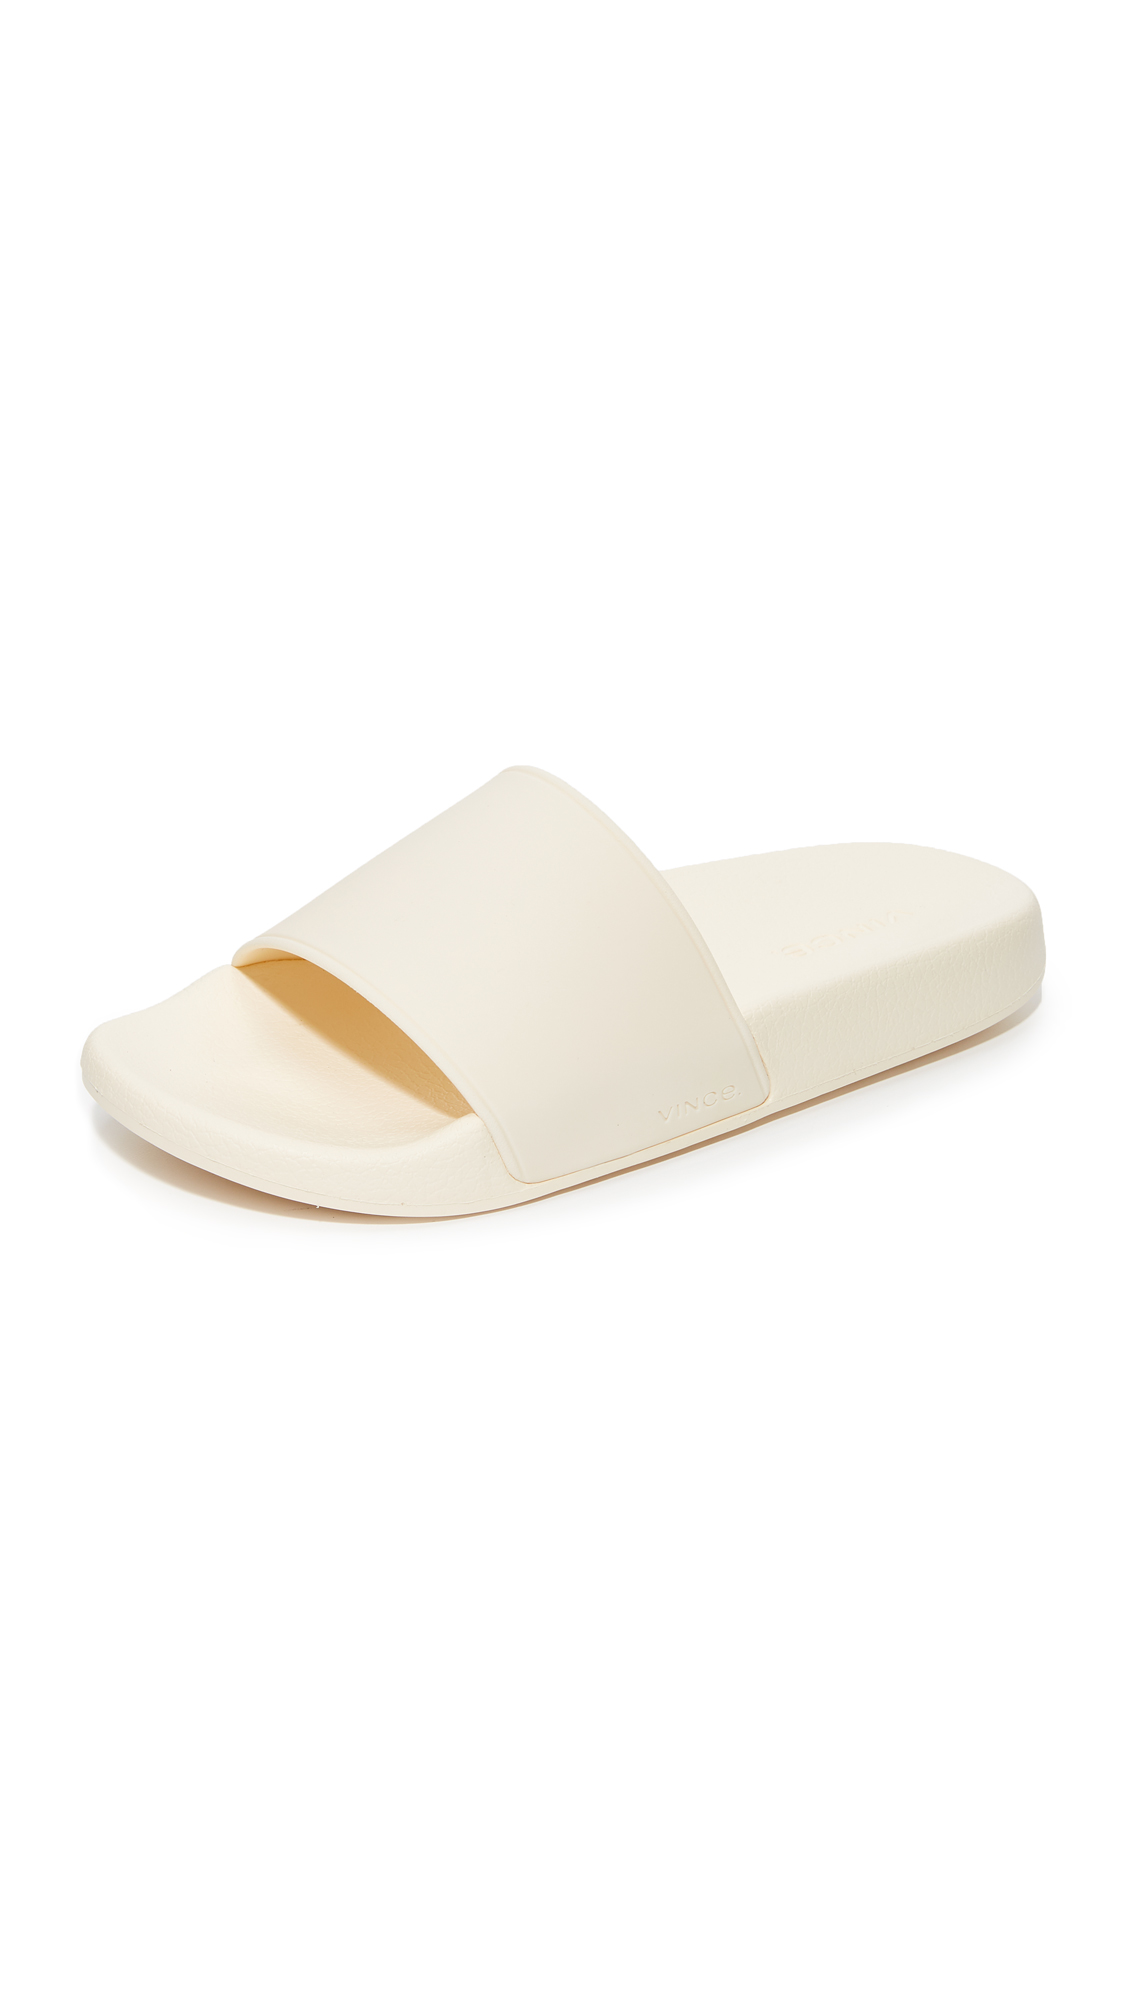 Vince Westcoast Slide Sandals - Cream